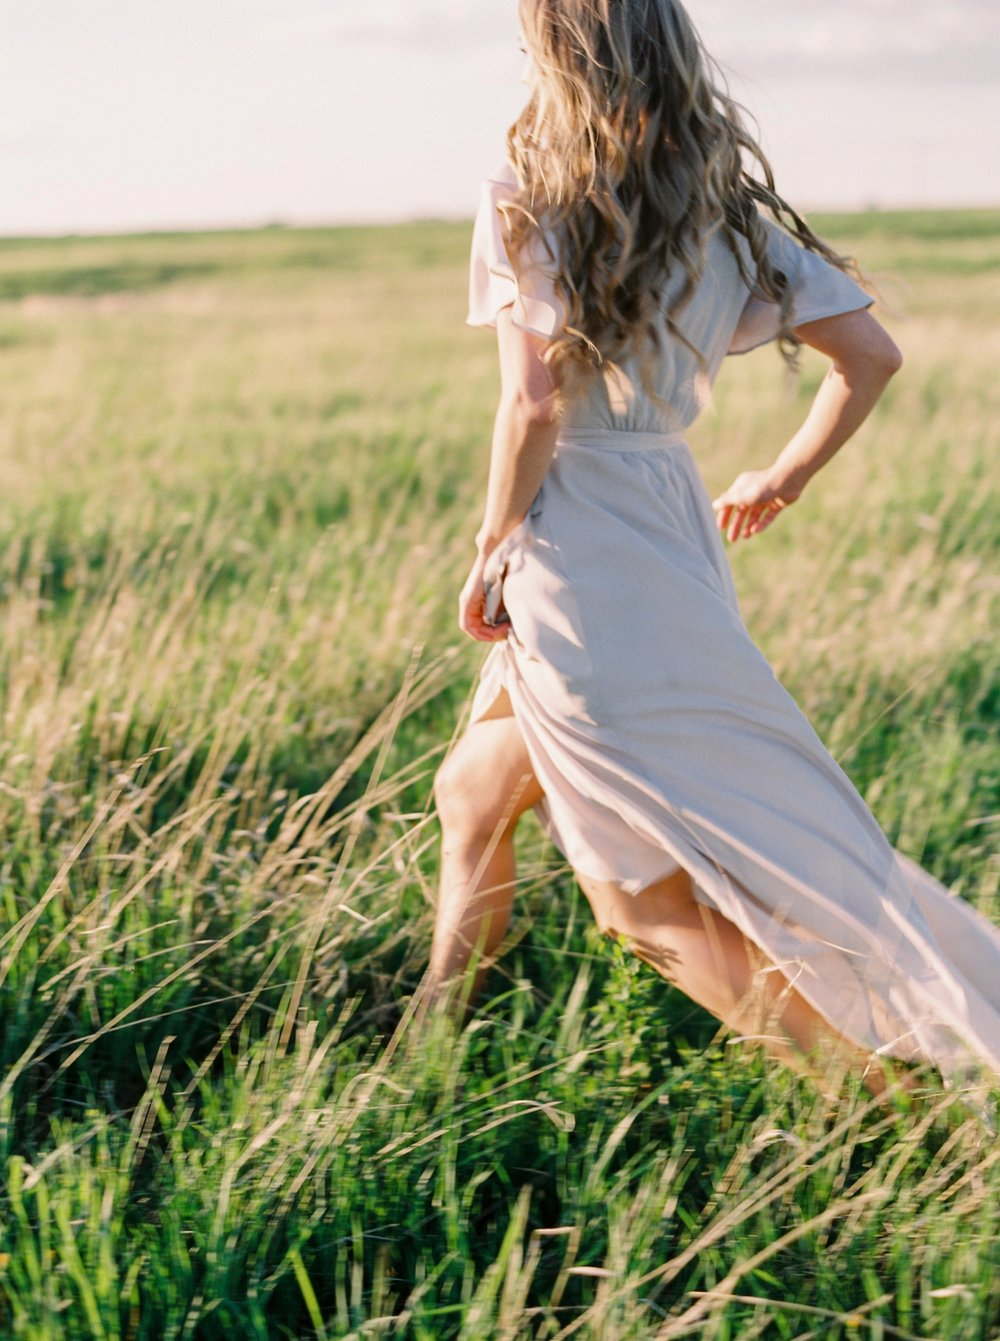 Calgary wedding photographers | The Gathered Farm Wedding | Justine milton fine art film photographer | sunset bridesmaid portraits nude dresses